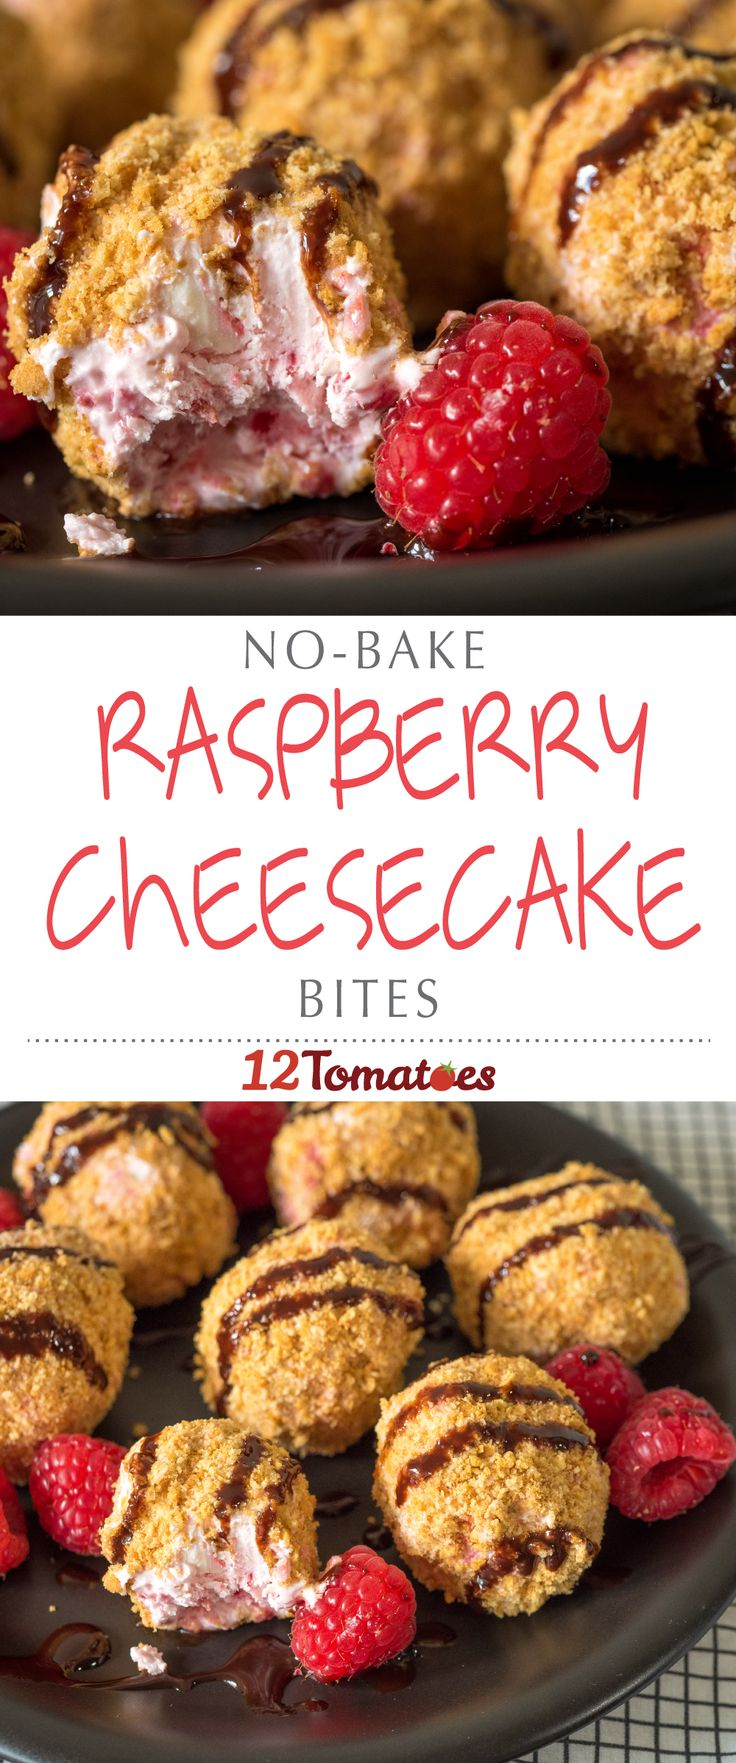 No-Bake Raspberry Cheesecake Bites | bite-sized treats that you can get out of the fridge or freezer whenever you need a boost? Yes, please. Two of those and you'll be feeling better in no time!